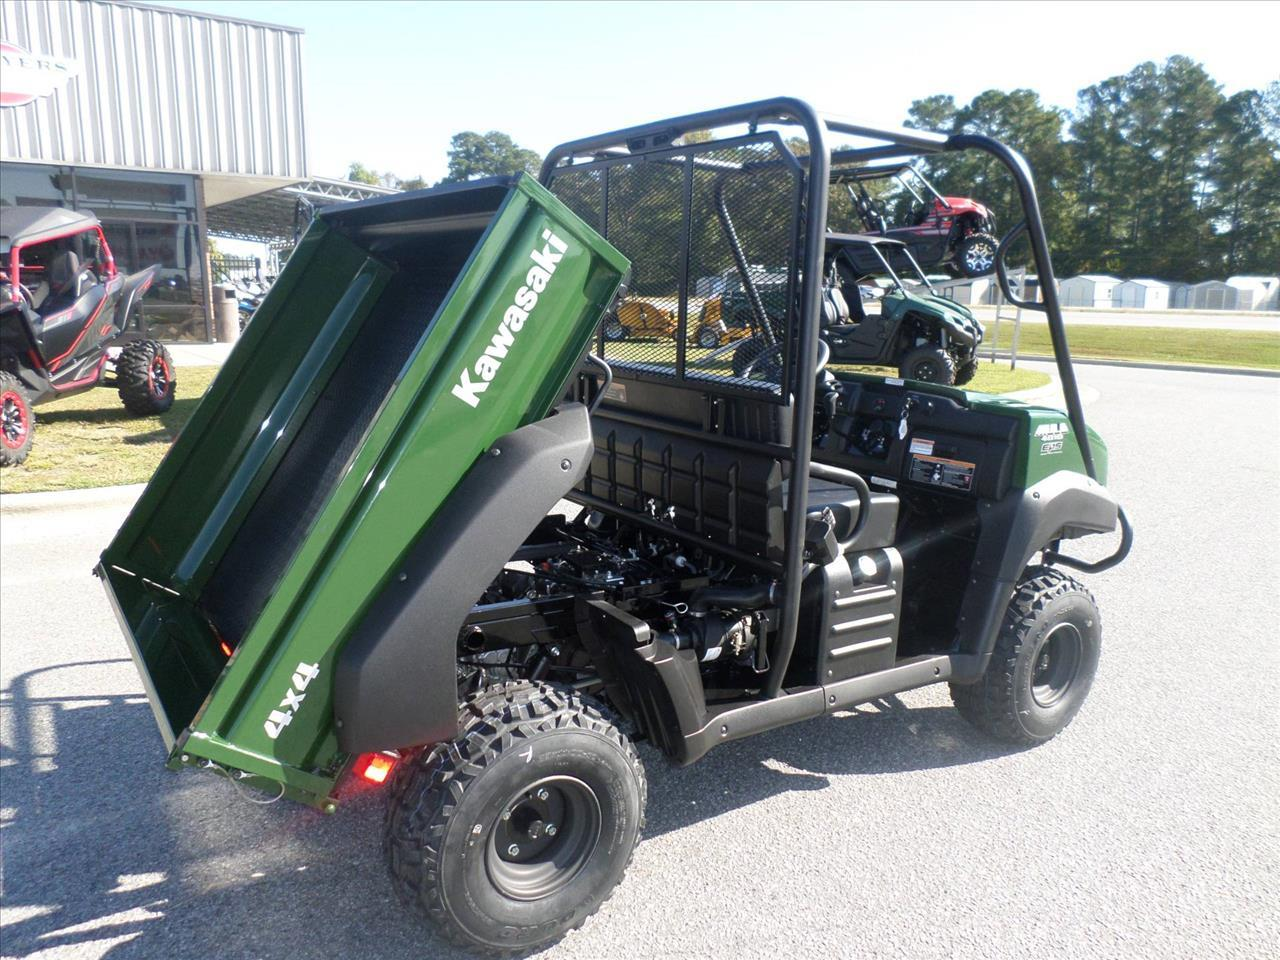 2017 Kawasaki Mule 4010 4x4 for sale at Vehicle Network, LLC - Ron Ayers Motorsports in Greenville NC